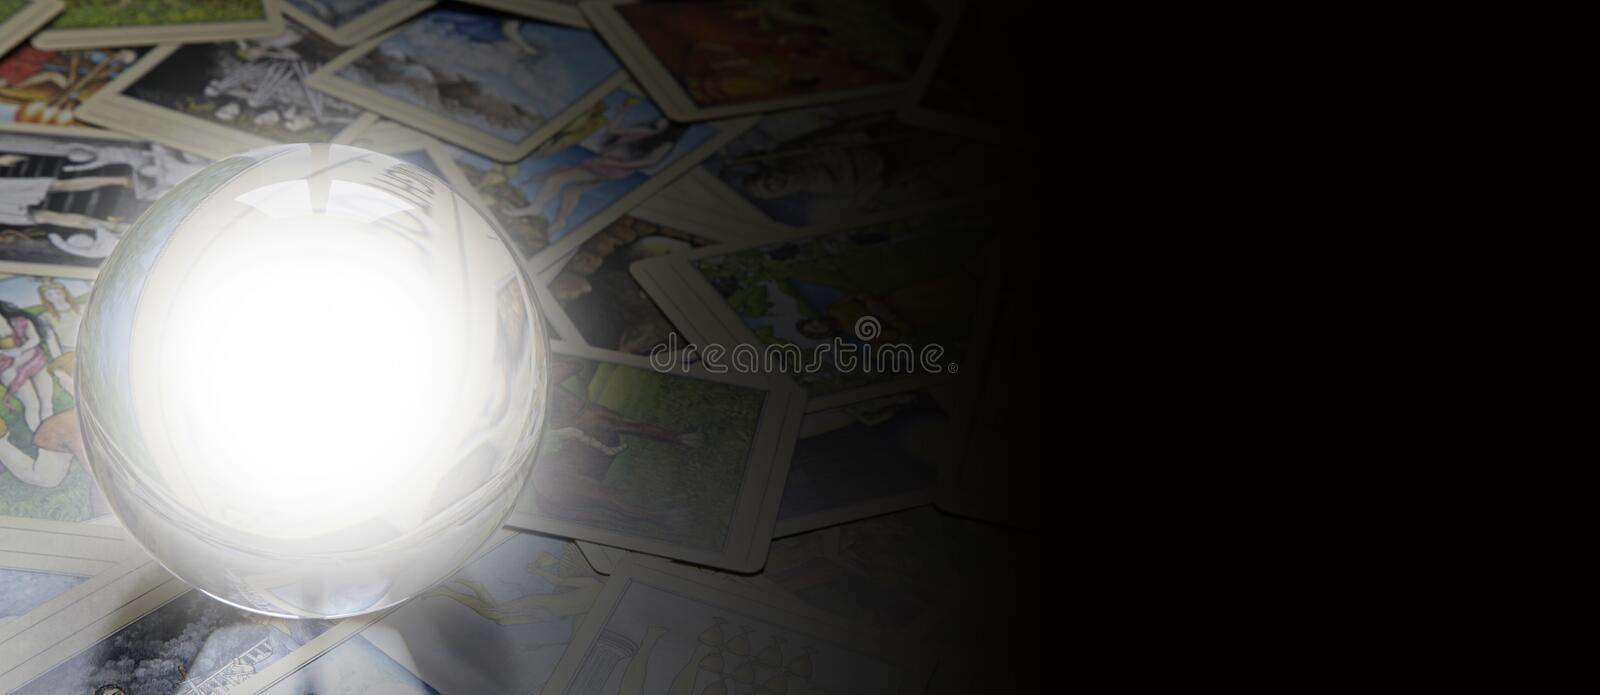 Tarot Reader's website banner. Crystal Ball with white empty center laid on scattered tarot cards faded off to the right merged with black for a wide web banner